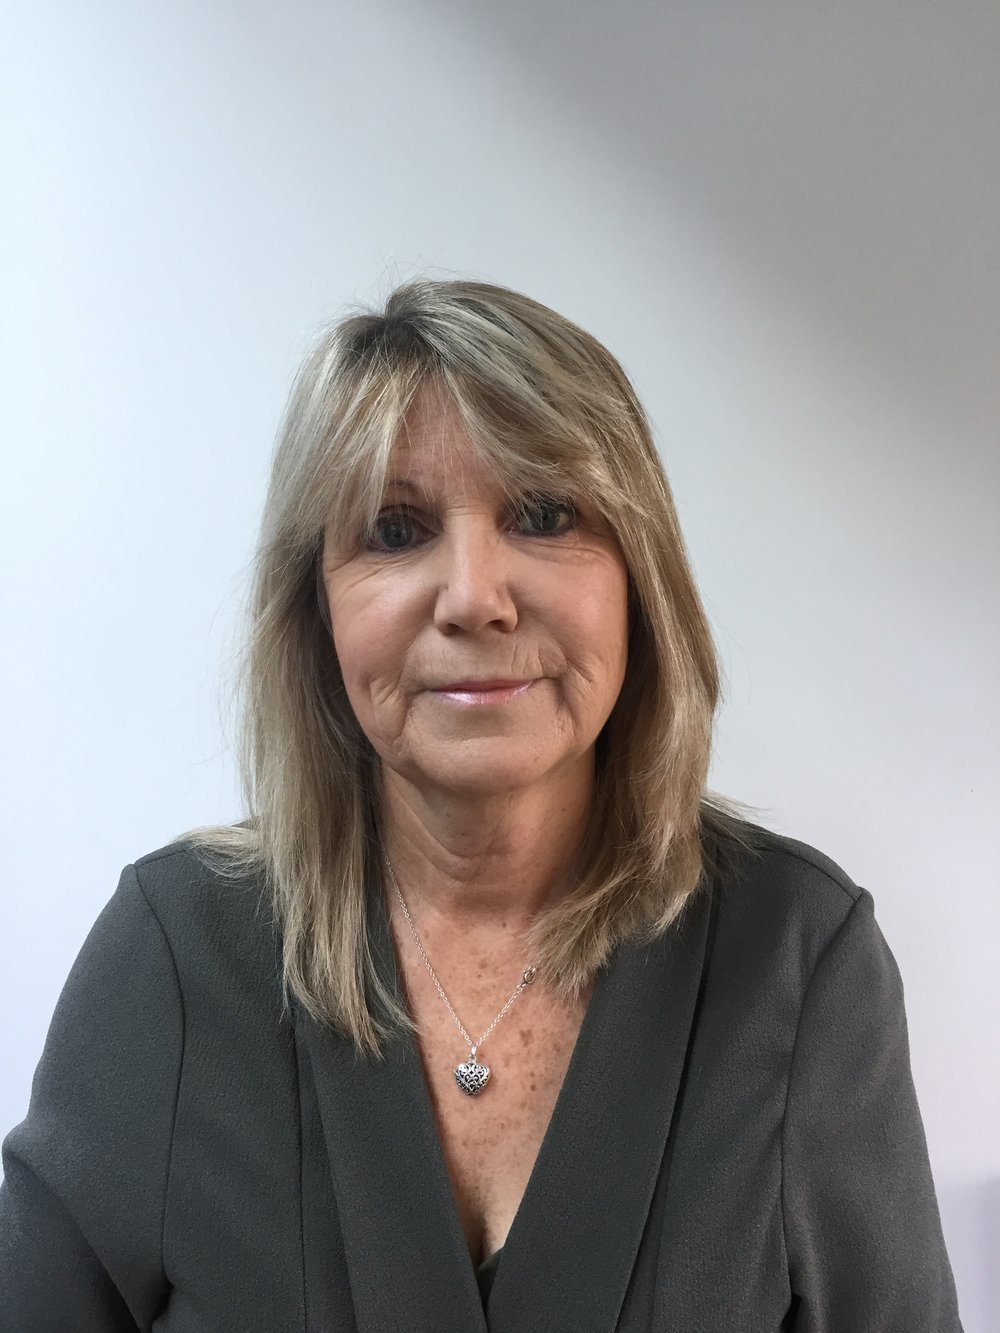 Miriam has a wealth of experience working with children, she was a teacher for over 25 years including SENDCo Lead